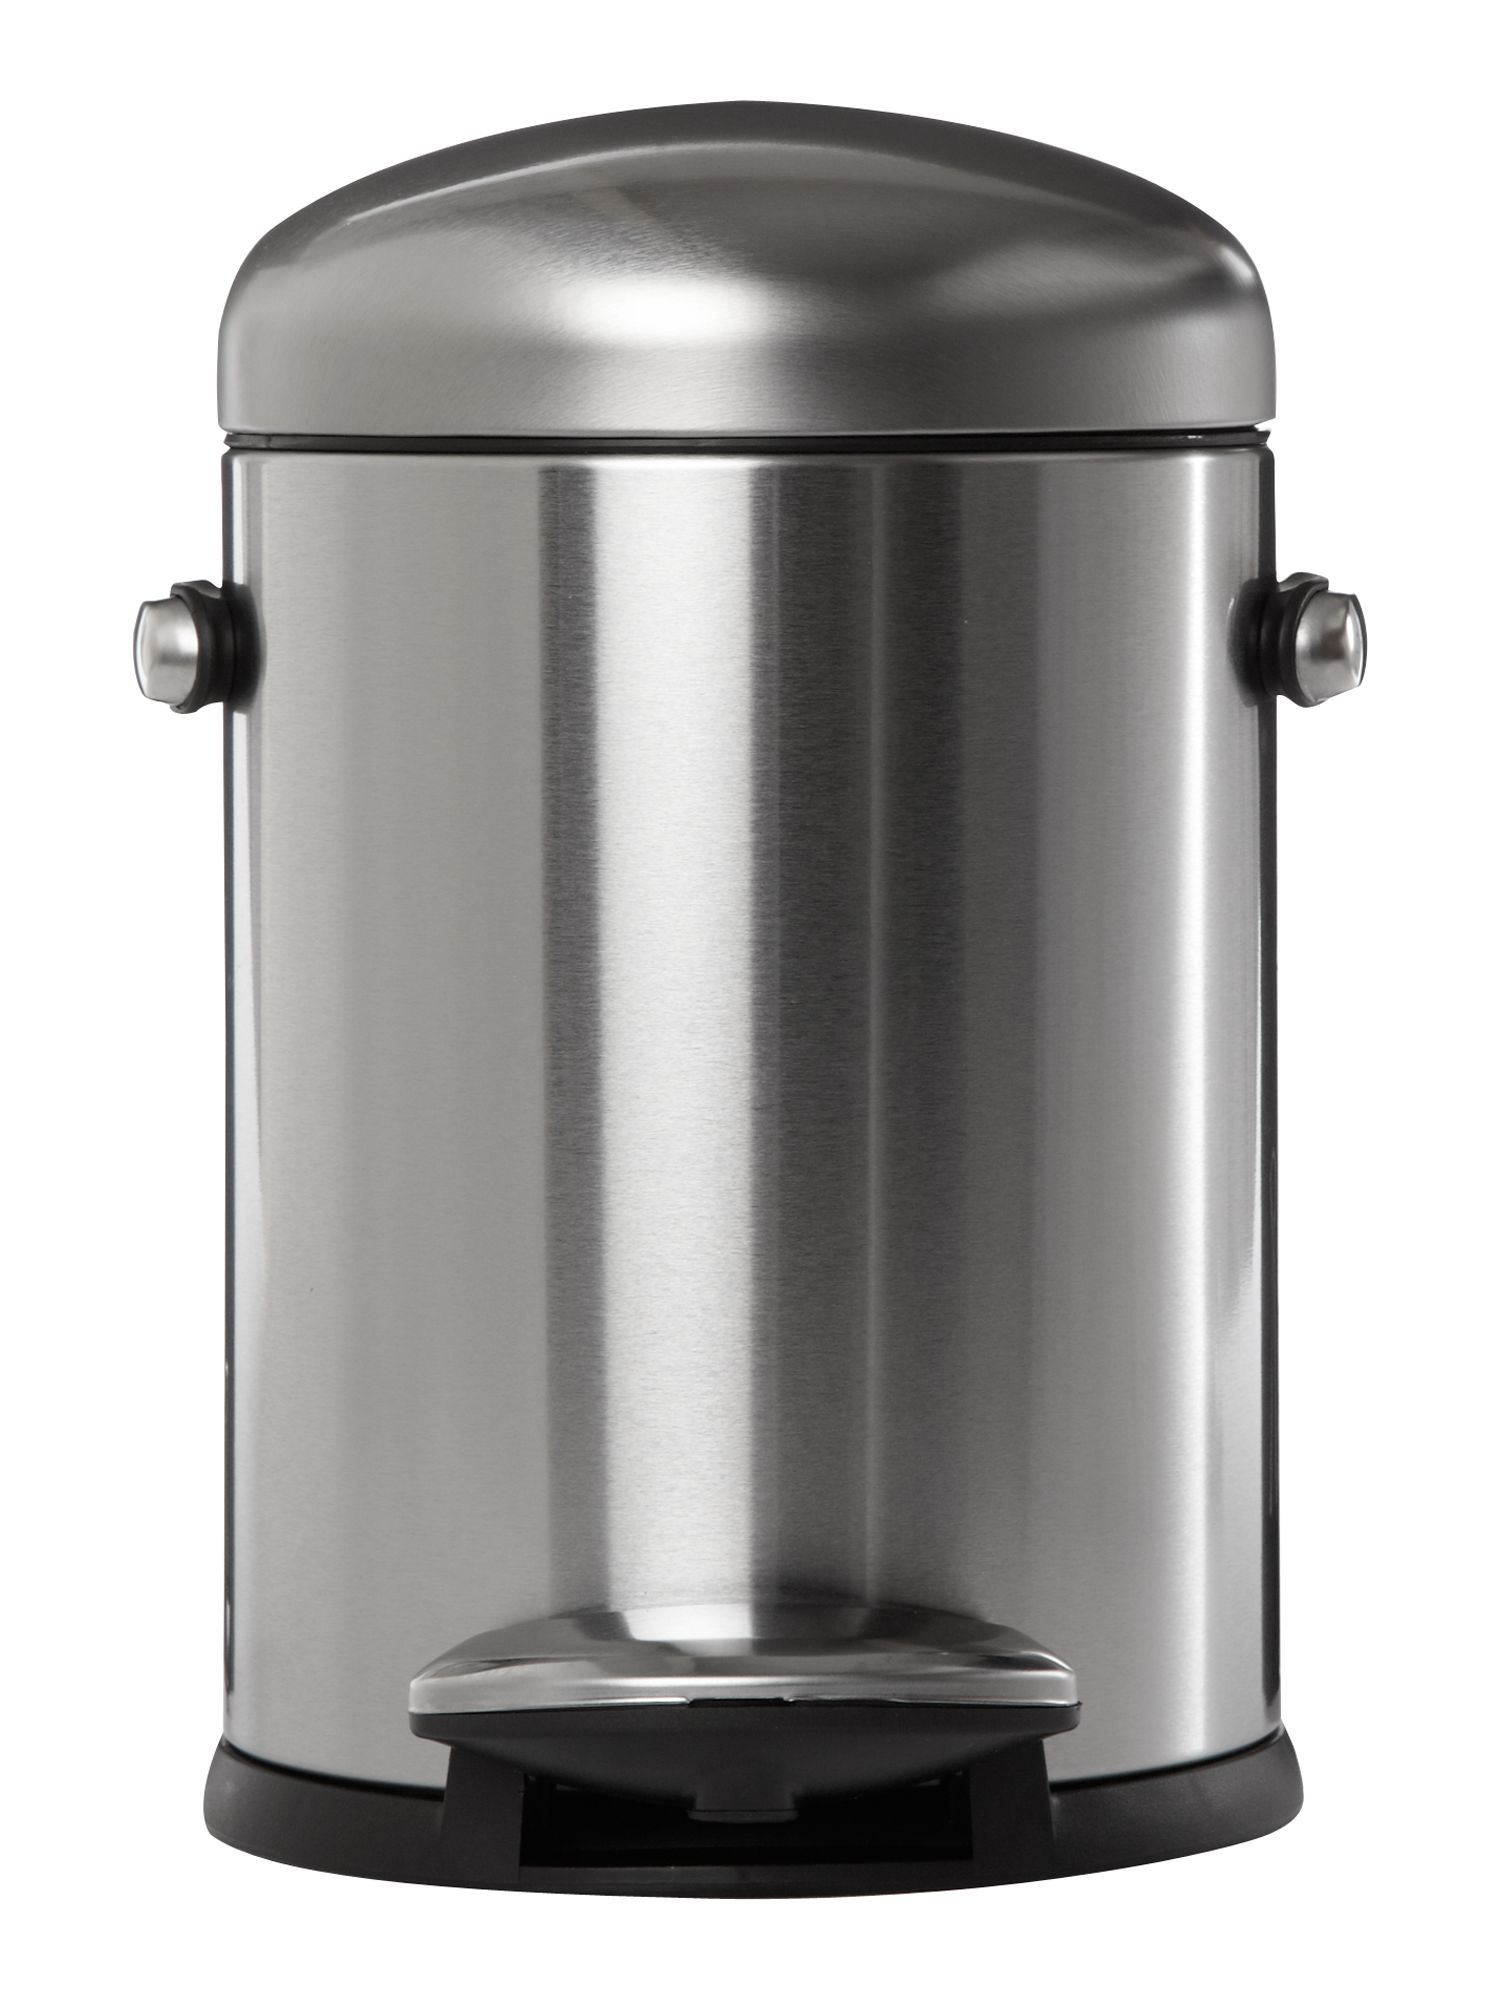 Simplehuman Mini round retro bin in brushed stainless steel